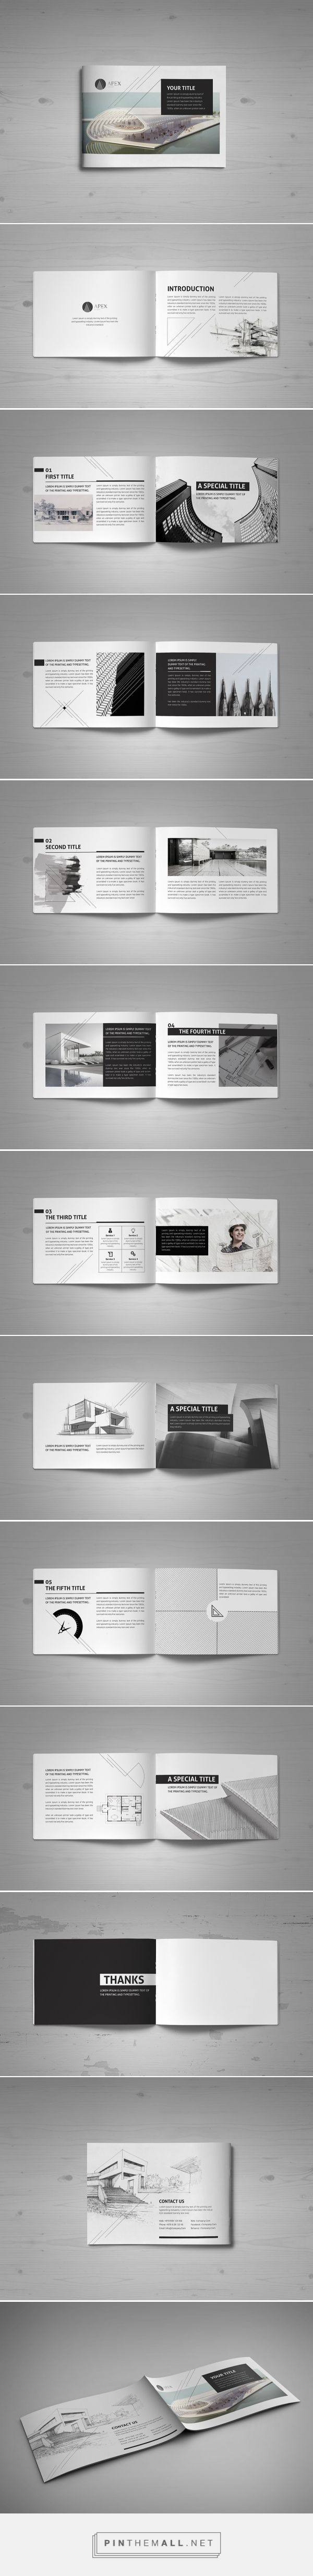 Minimal Modern Black & White Architecture Brochure  on Behance - created via…